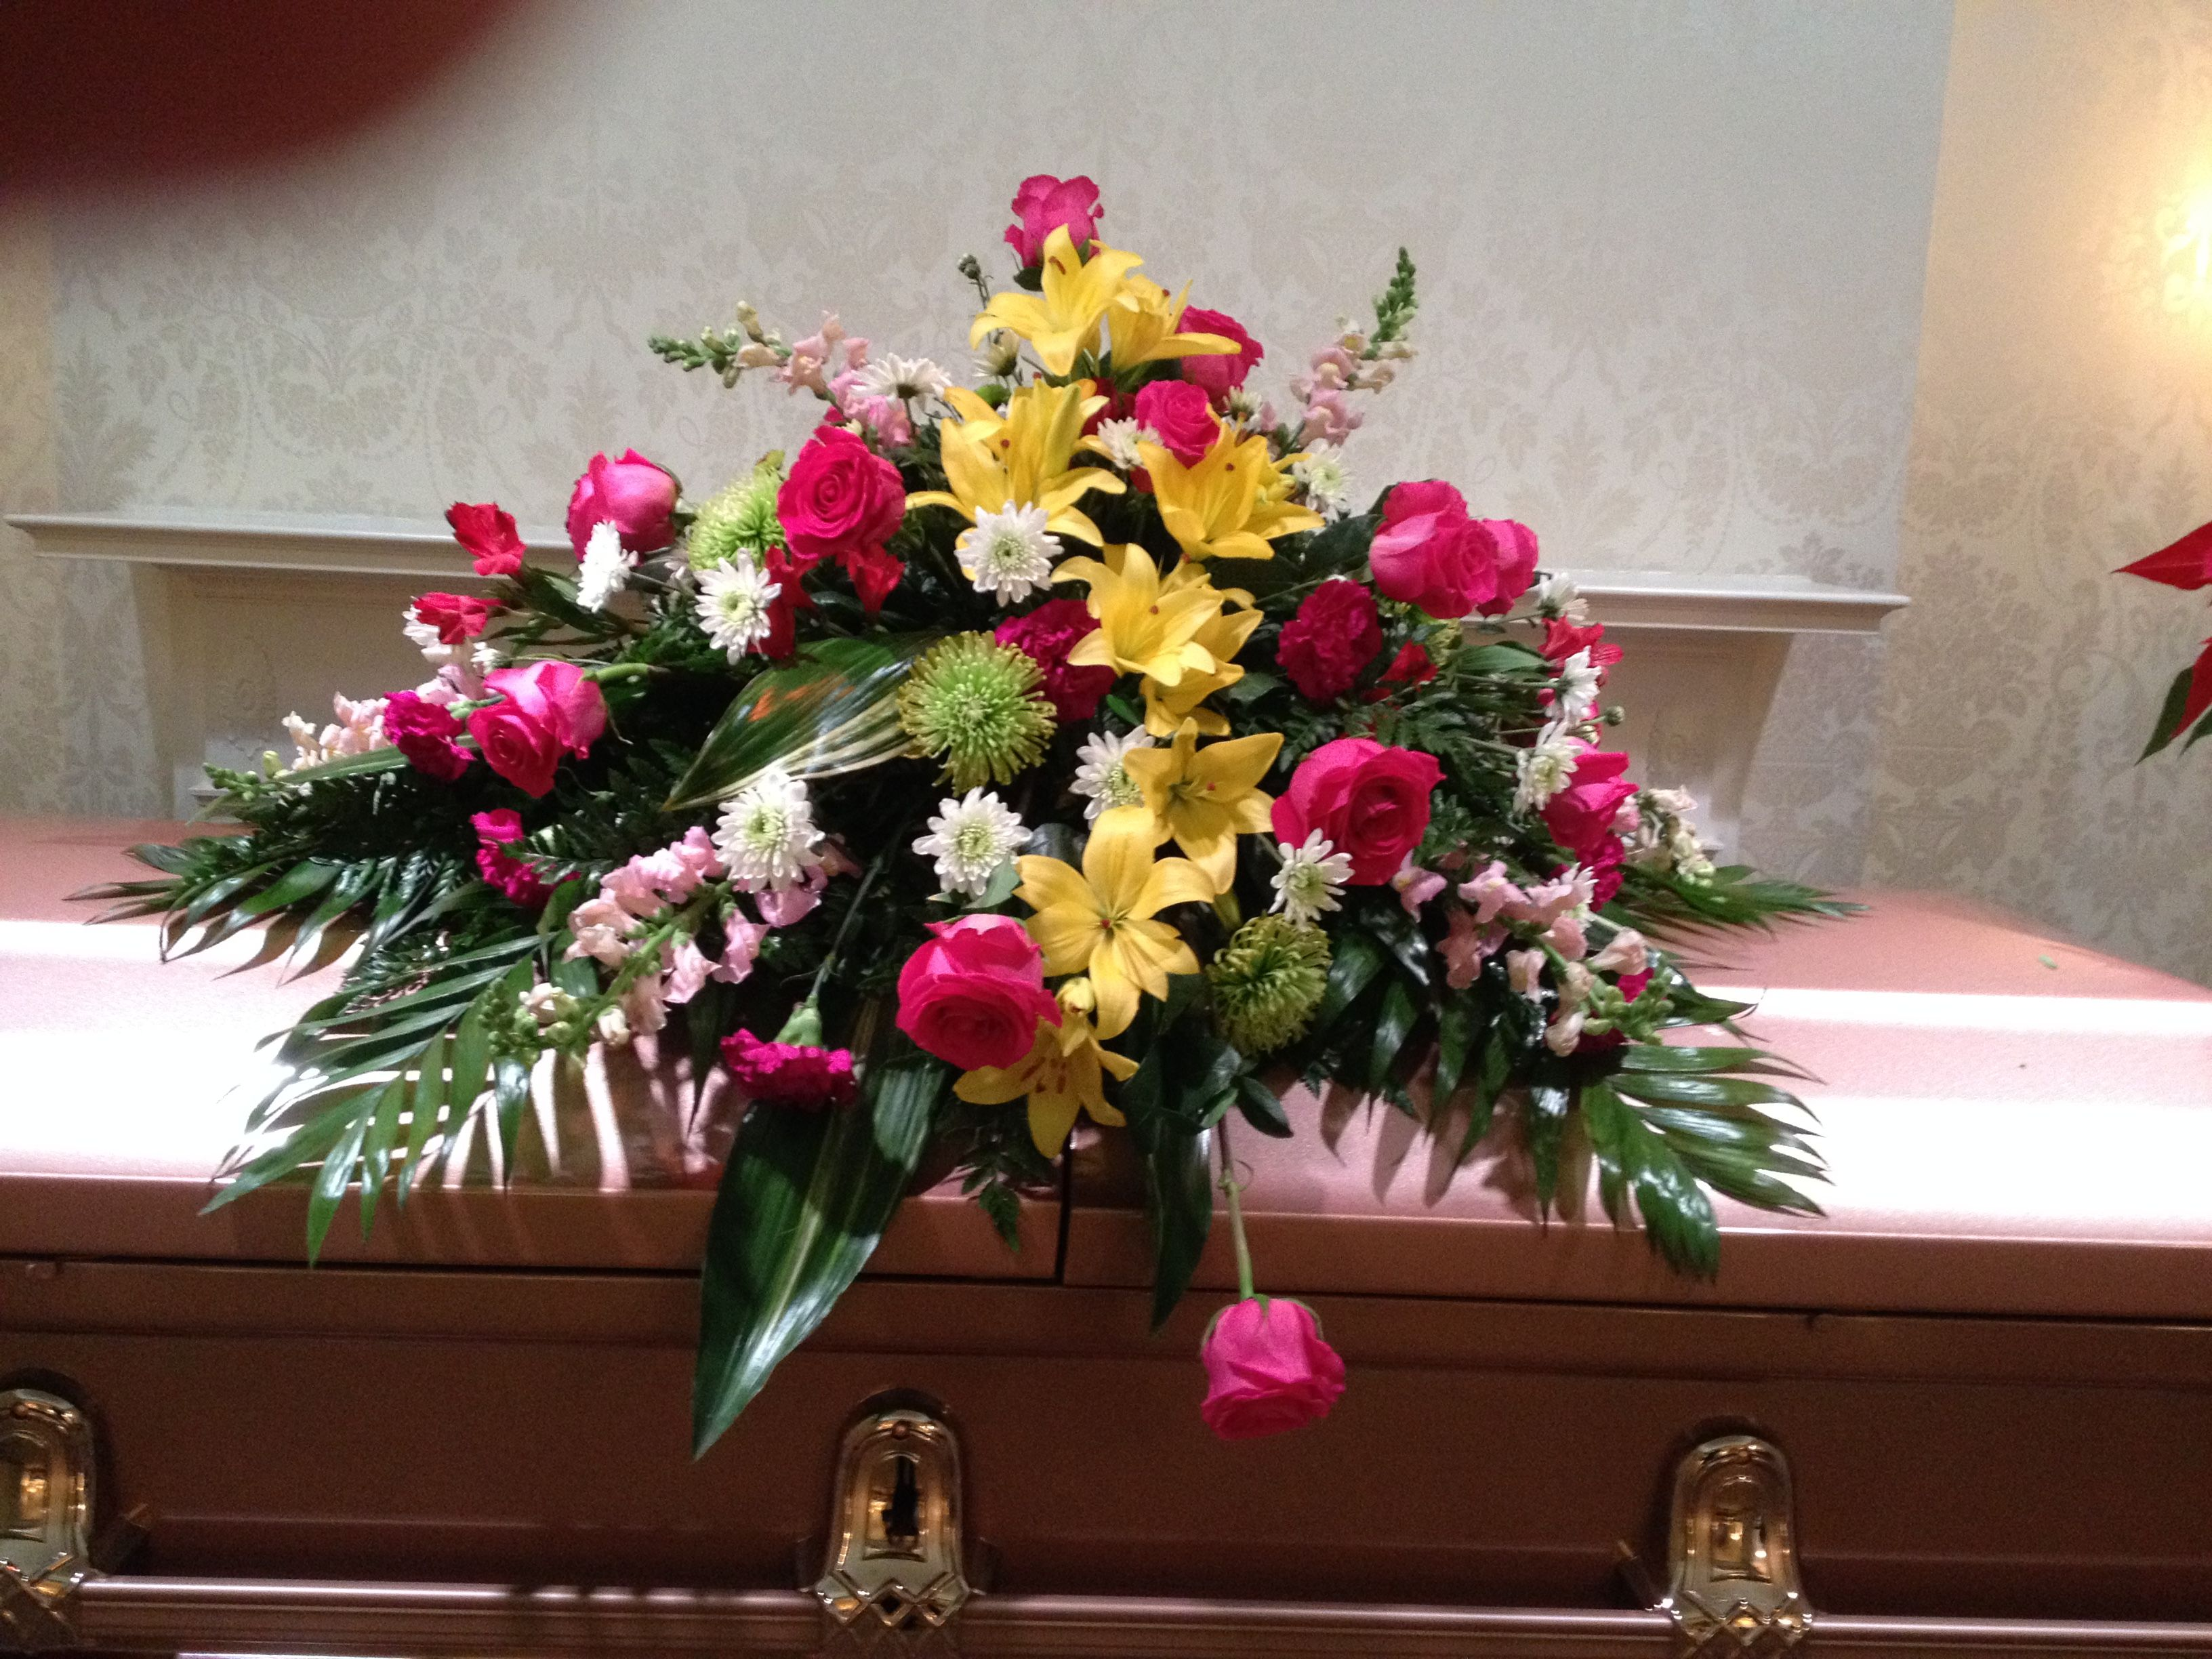 14 best funeral flowers images on pinterest funeral flowers the cascade of yellow lilies are the focal of this casket piece filled with pink izmirmasajfo Gallery